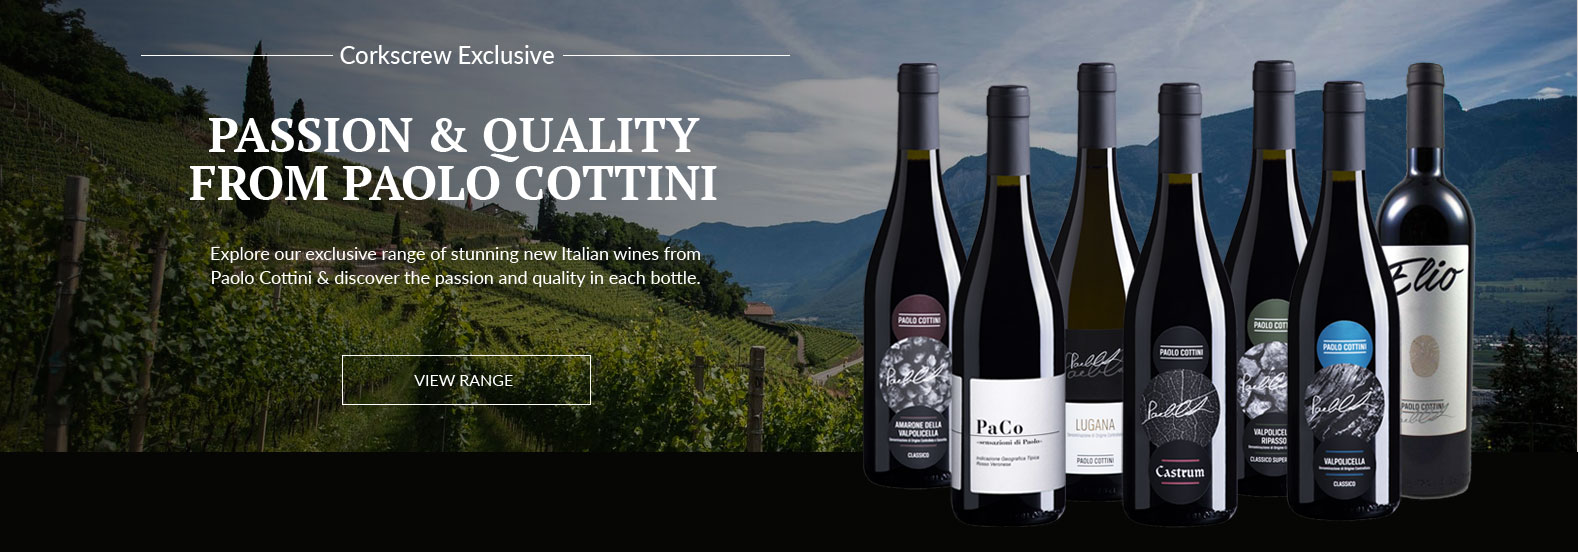 Selection of Paolo Cottini wines displayed in front of vineyard view